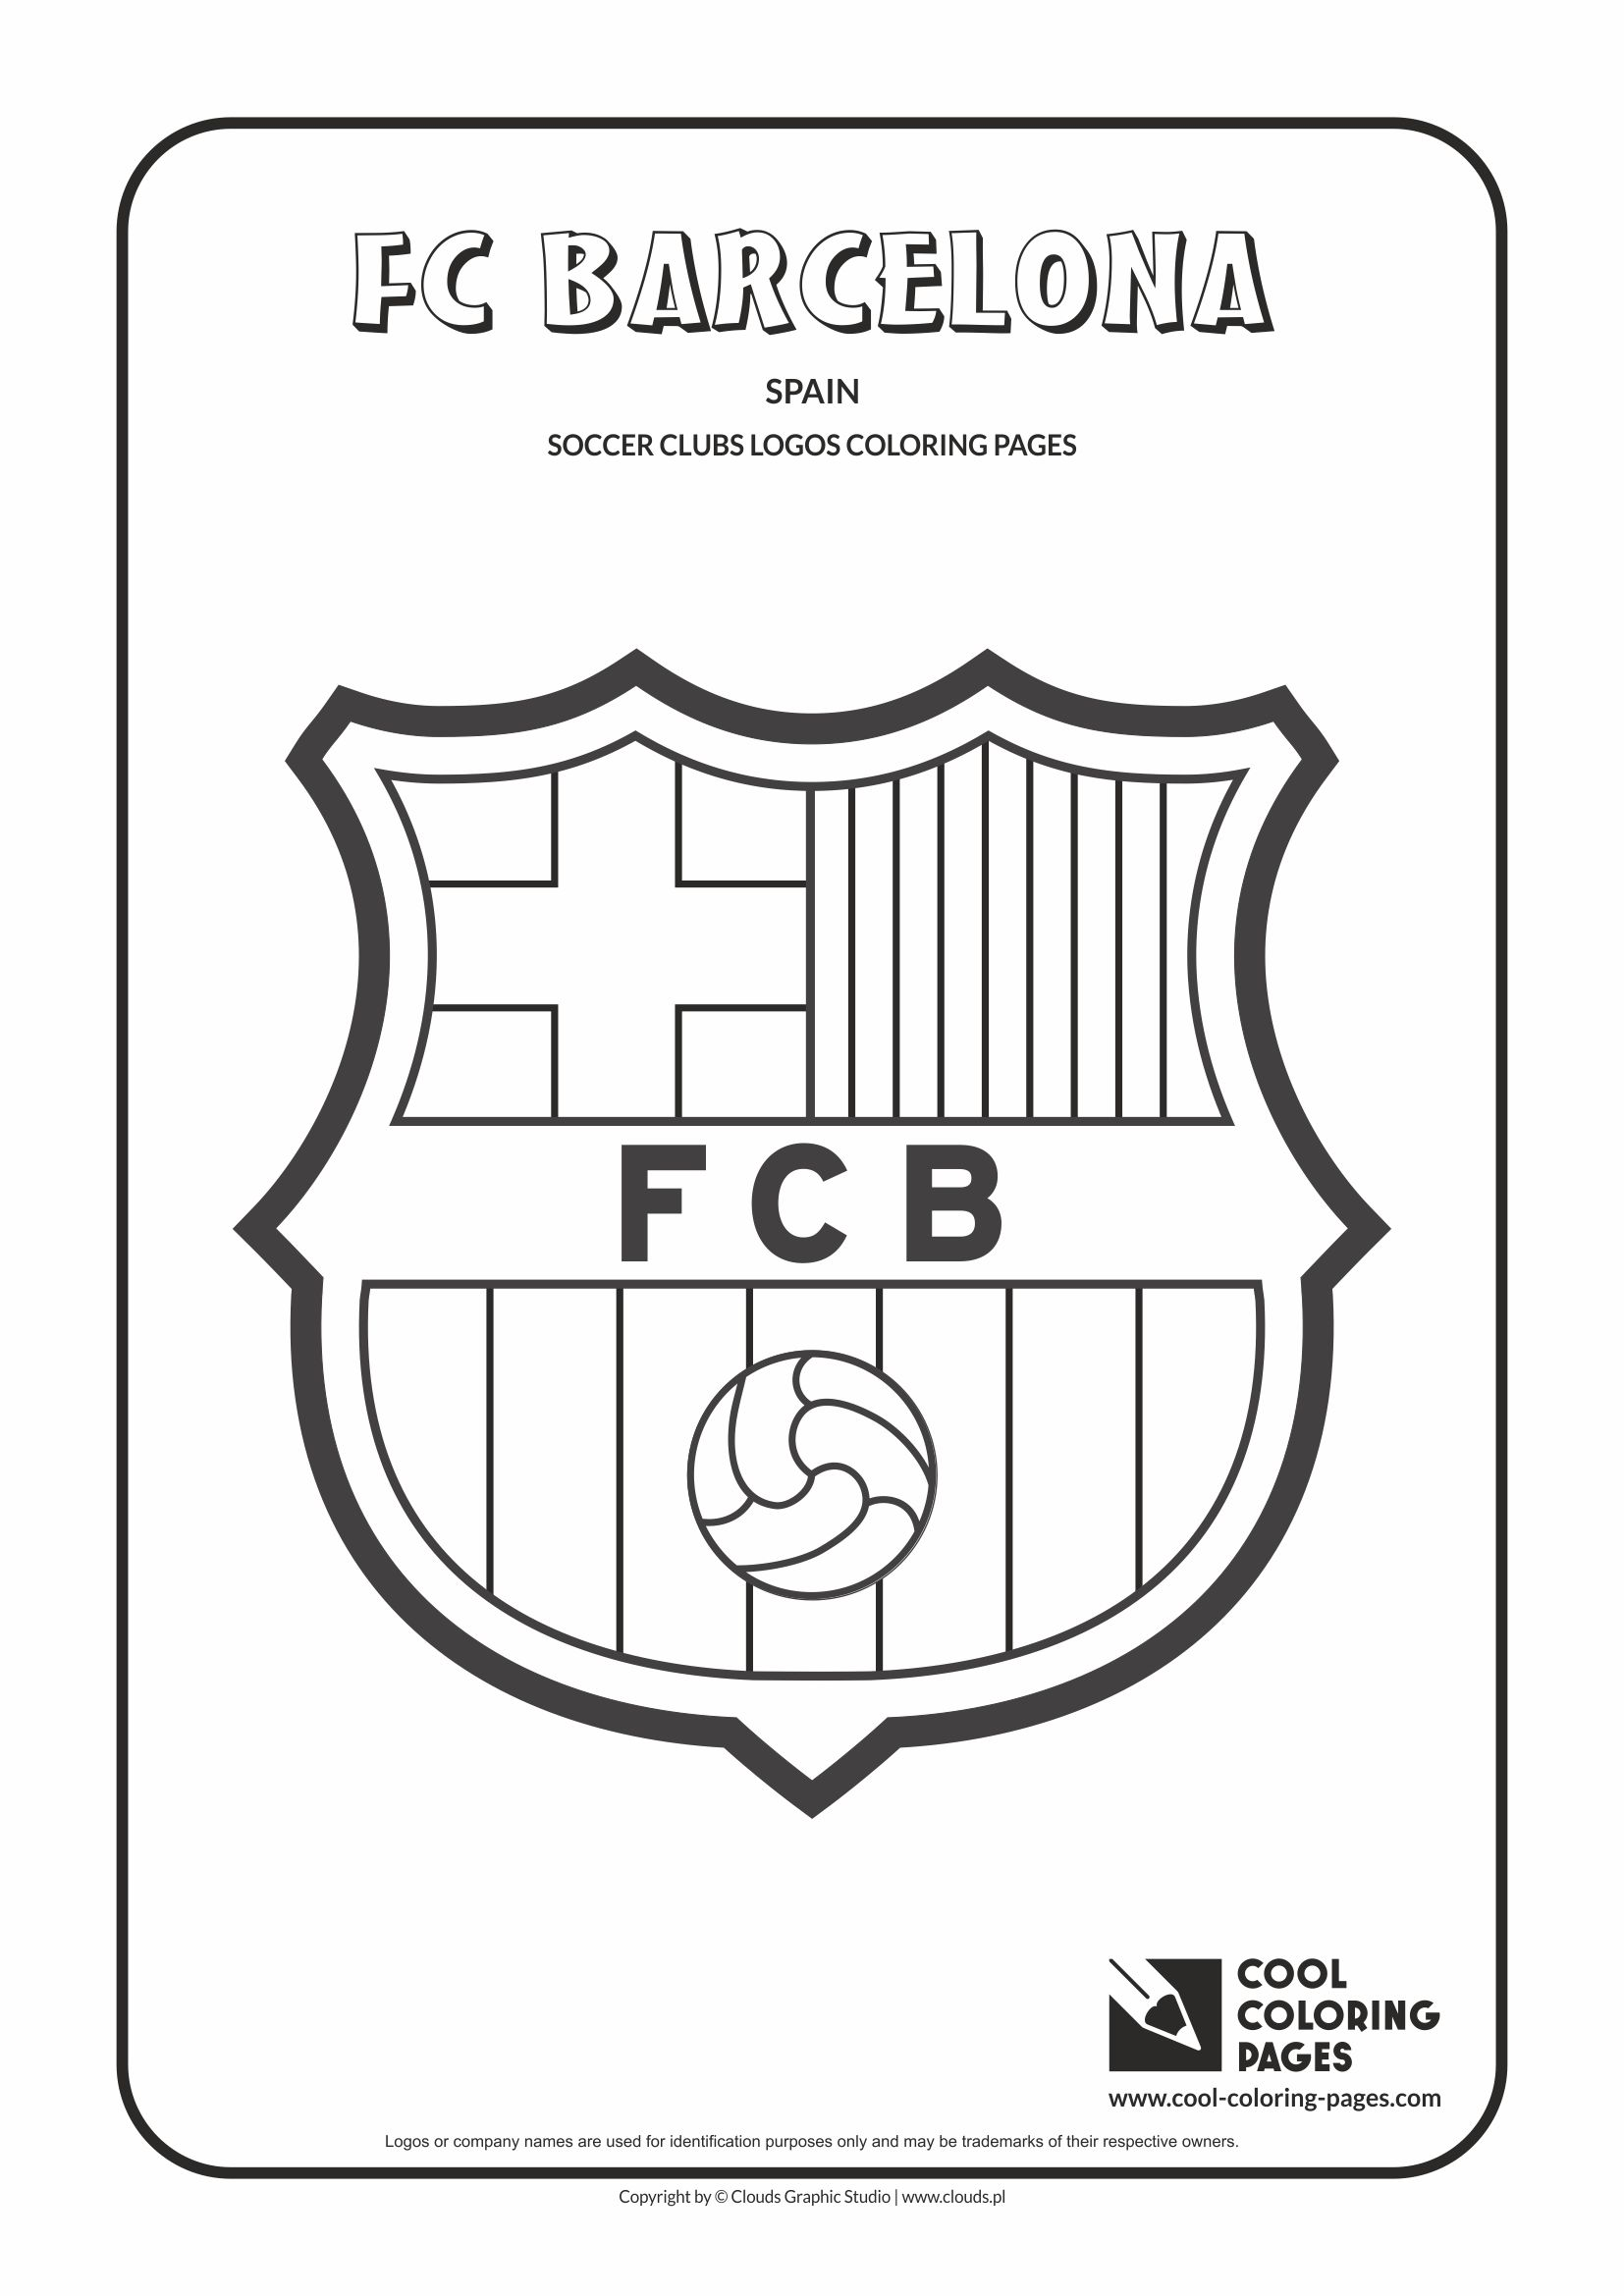 Cool Coloring Pages FC Barcelona logo coloring page Cool